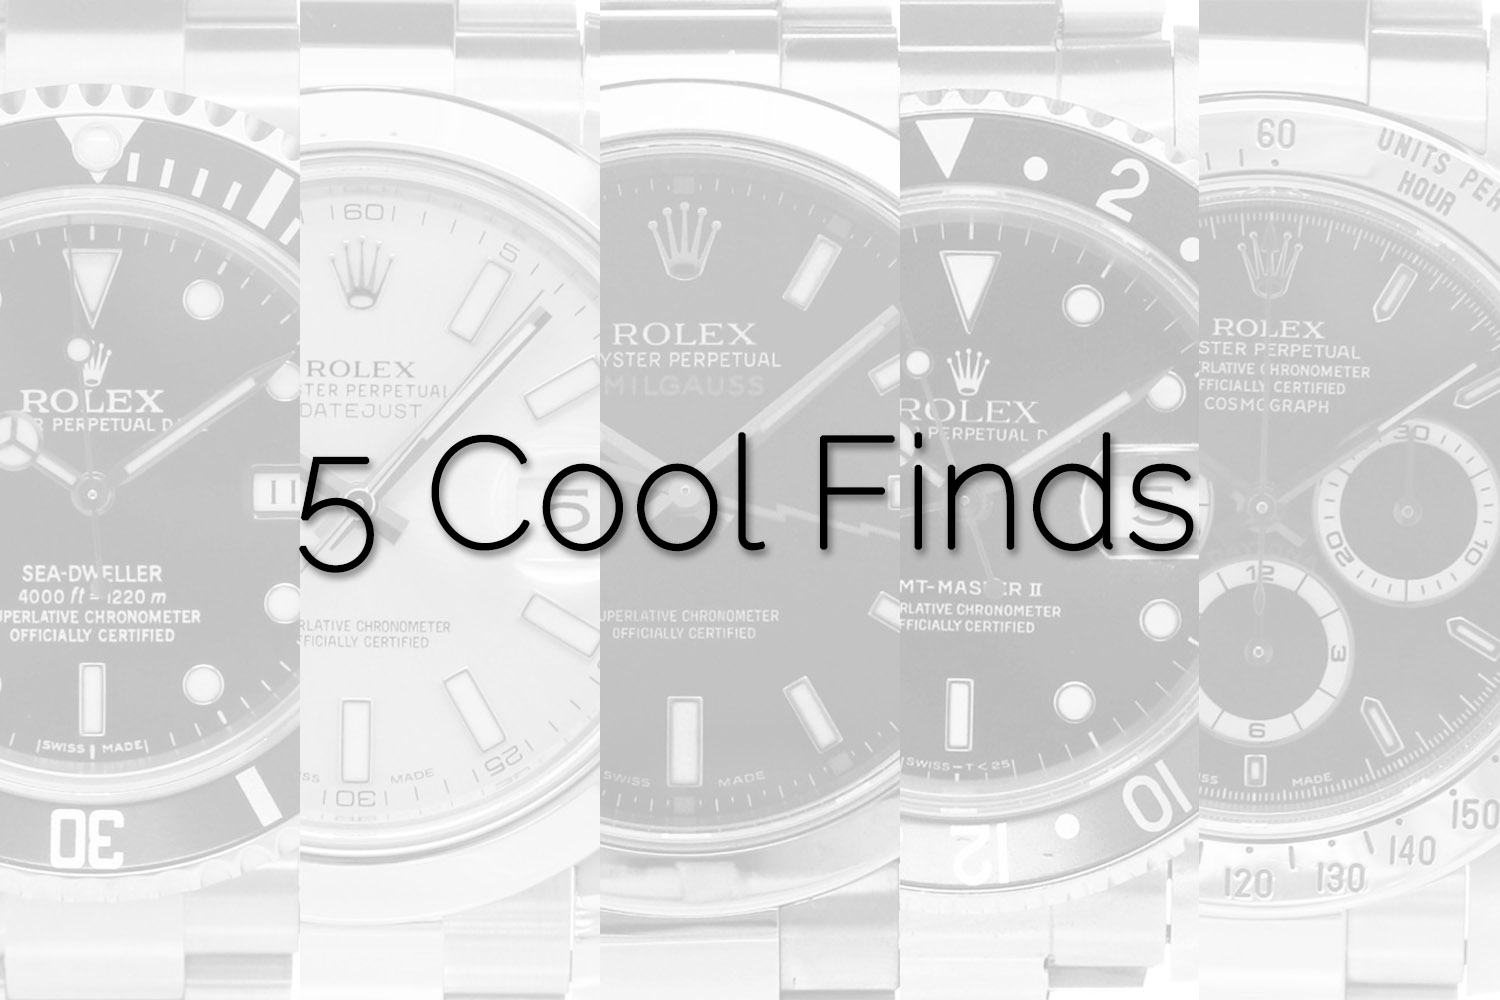 5 Cool Finds Chronext - youngtimer Rolex